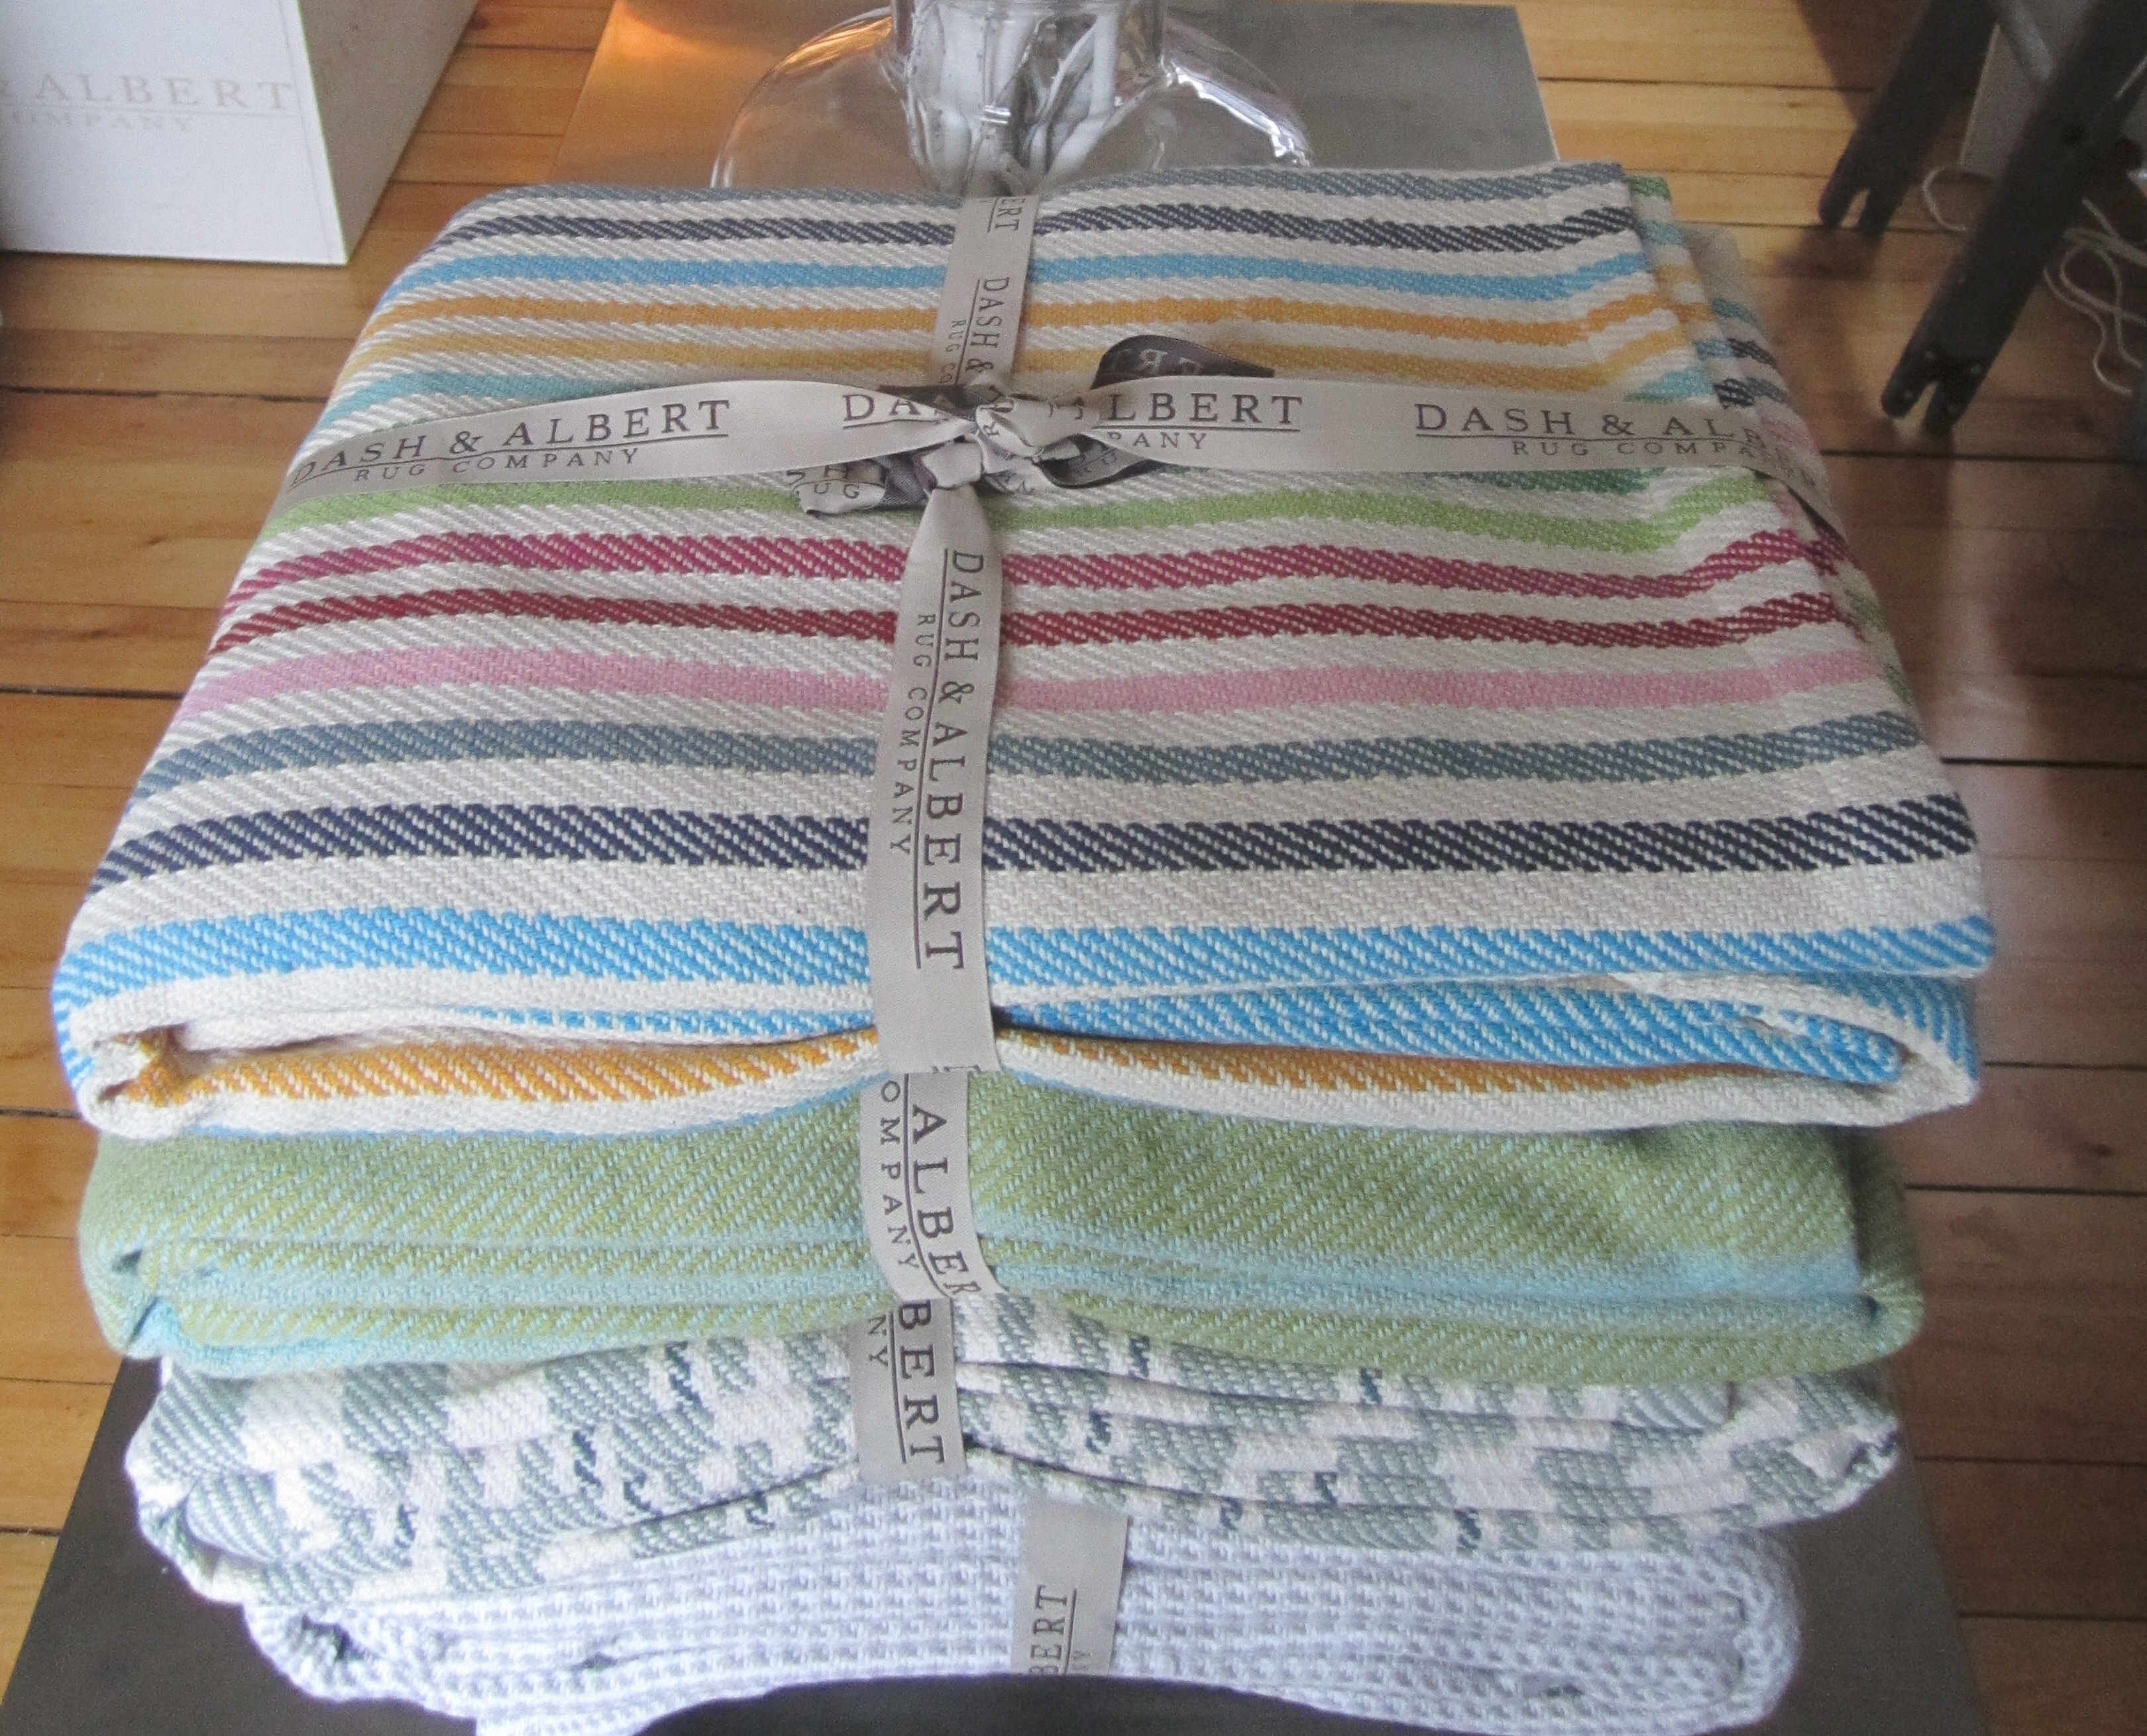 Blog for Dash and albert blankets